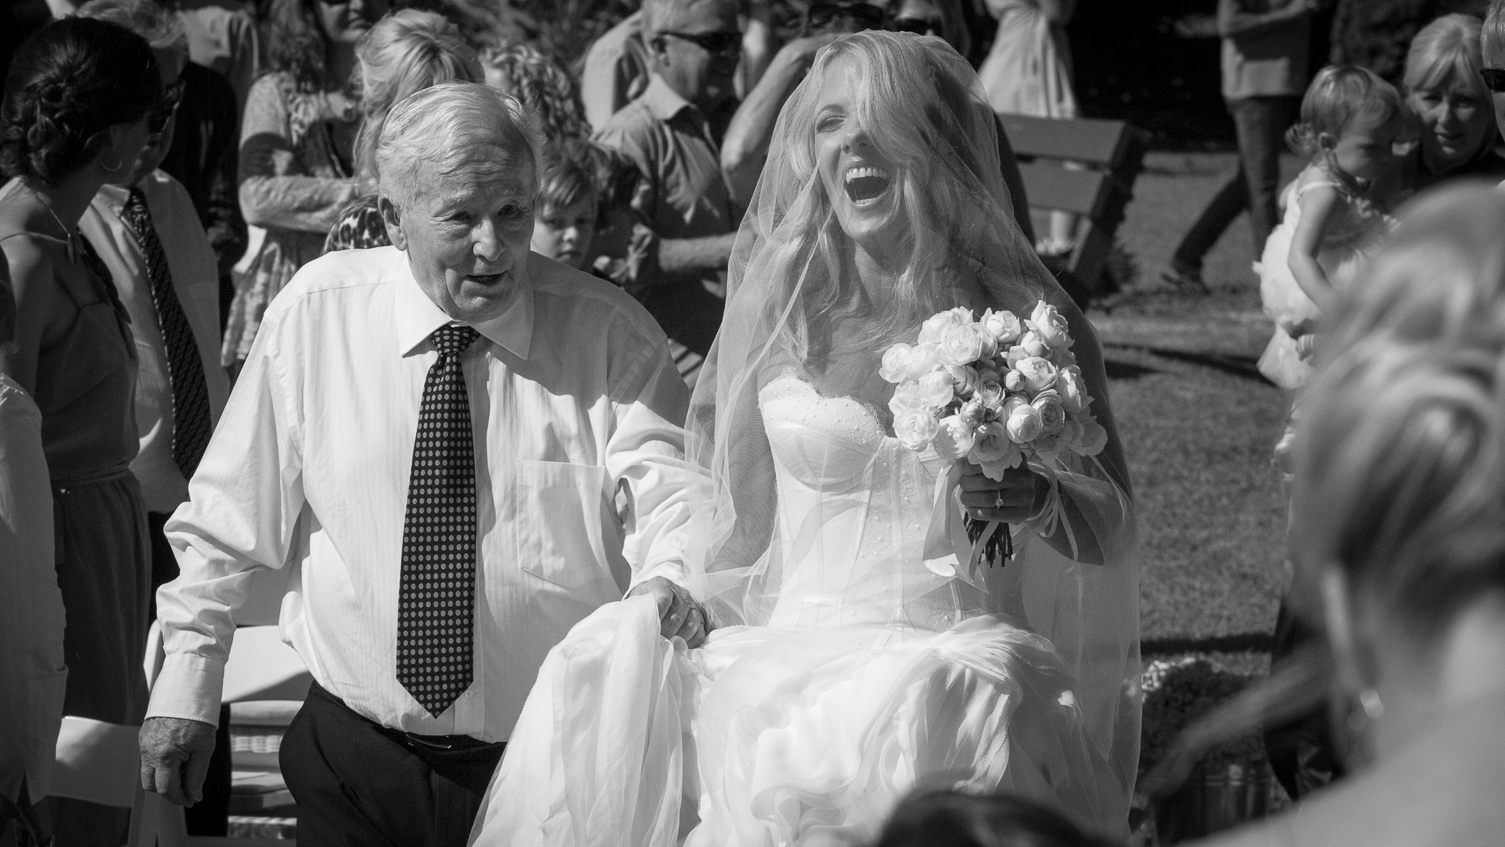 Make sure you get photographs of people special to the bride and groom*